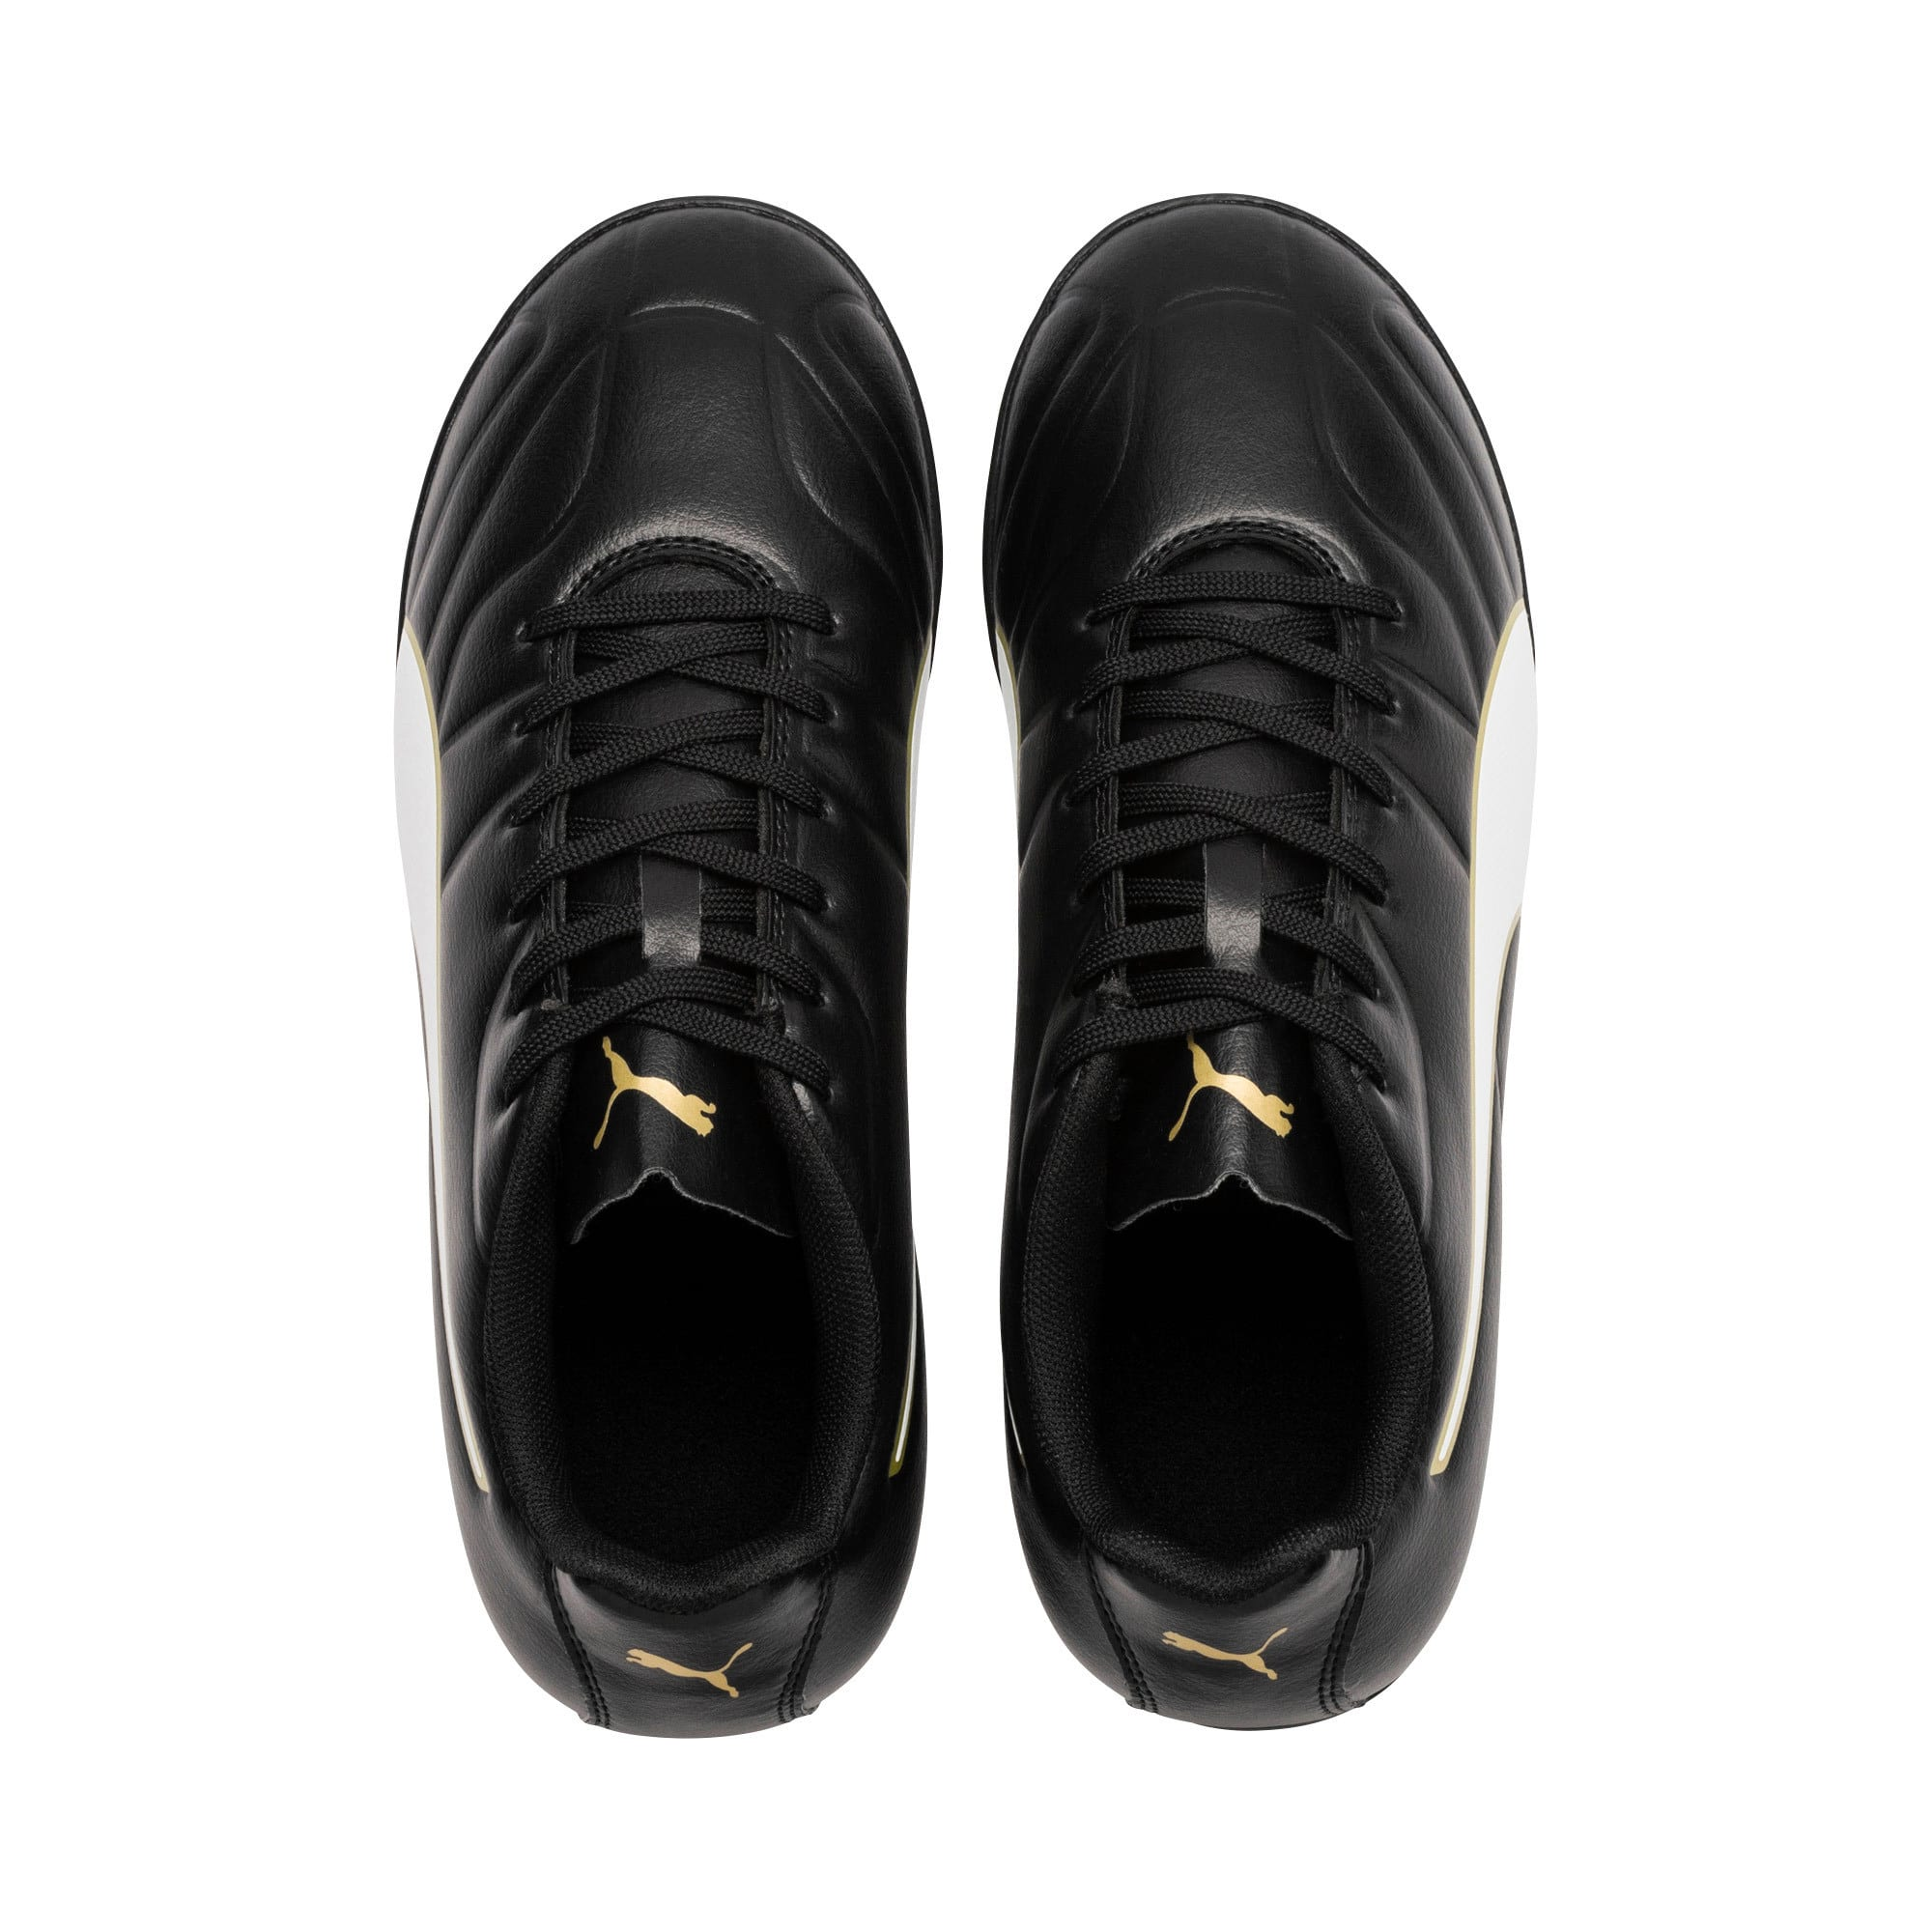 Thumbnail 6 of Classico C II TT Youth Football Boots, Black-White-Gold, medium-IND